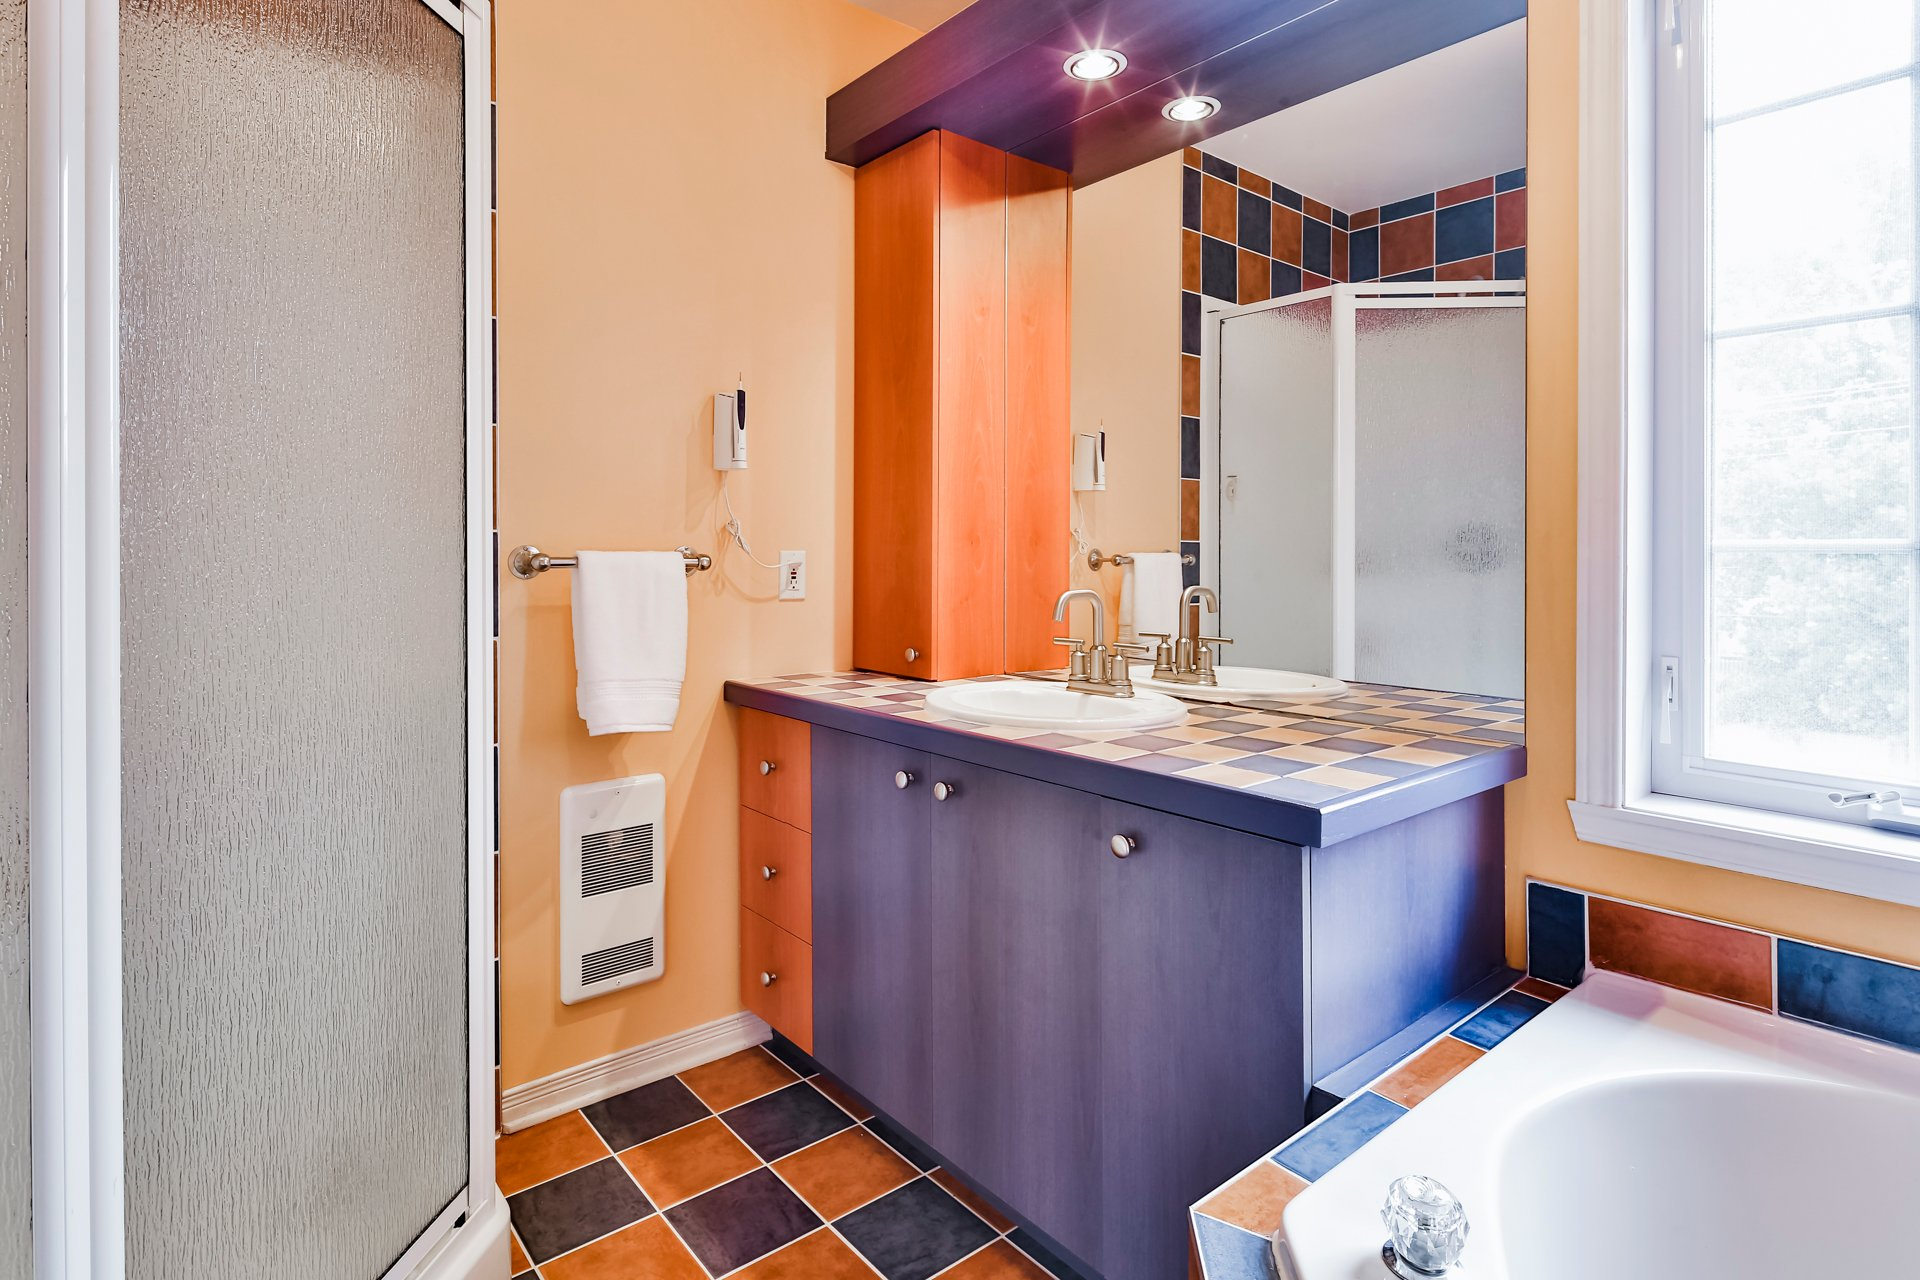 Salle De Bain Ove Laval ~ two or more storey for sale laval ouest laval buy two or more